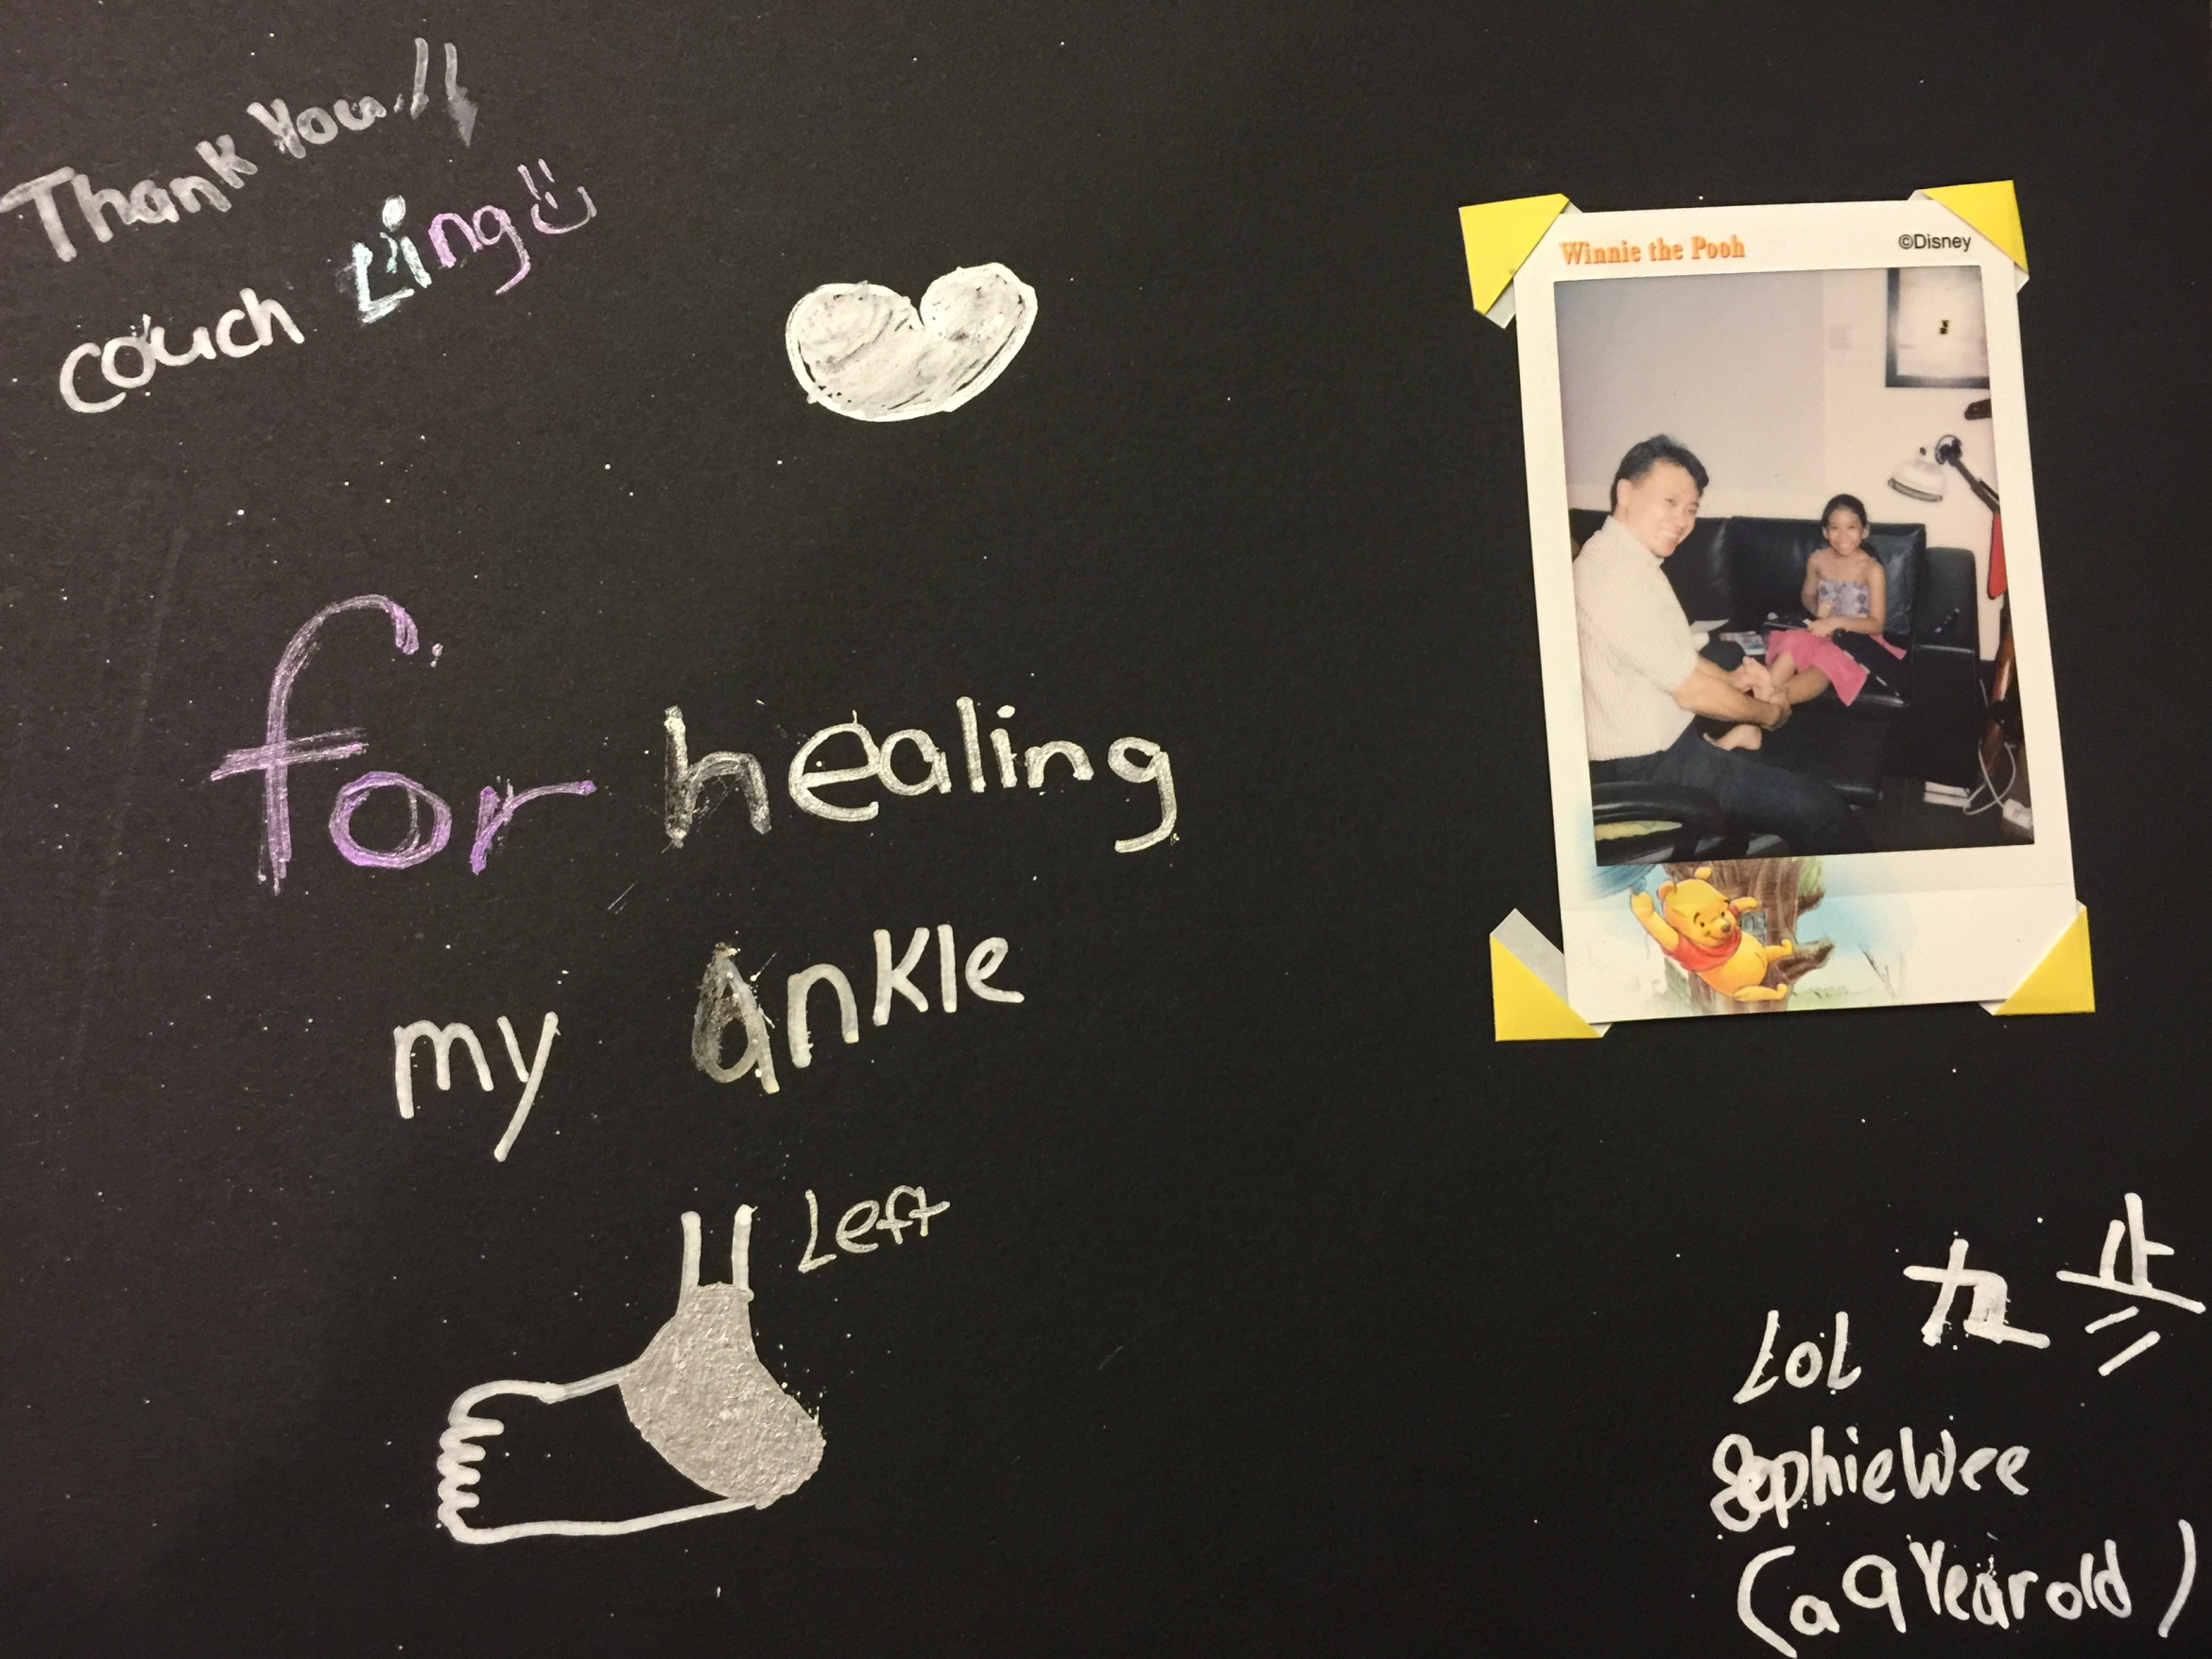 Thank you!! Coach Ling:) for healing my left ankle. LOL 9 岁 Sophie Wee (a 9 year-old)